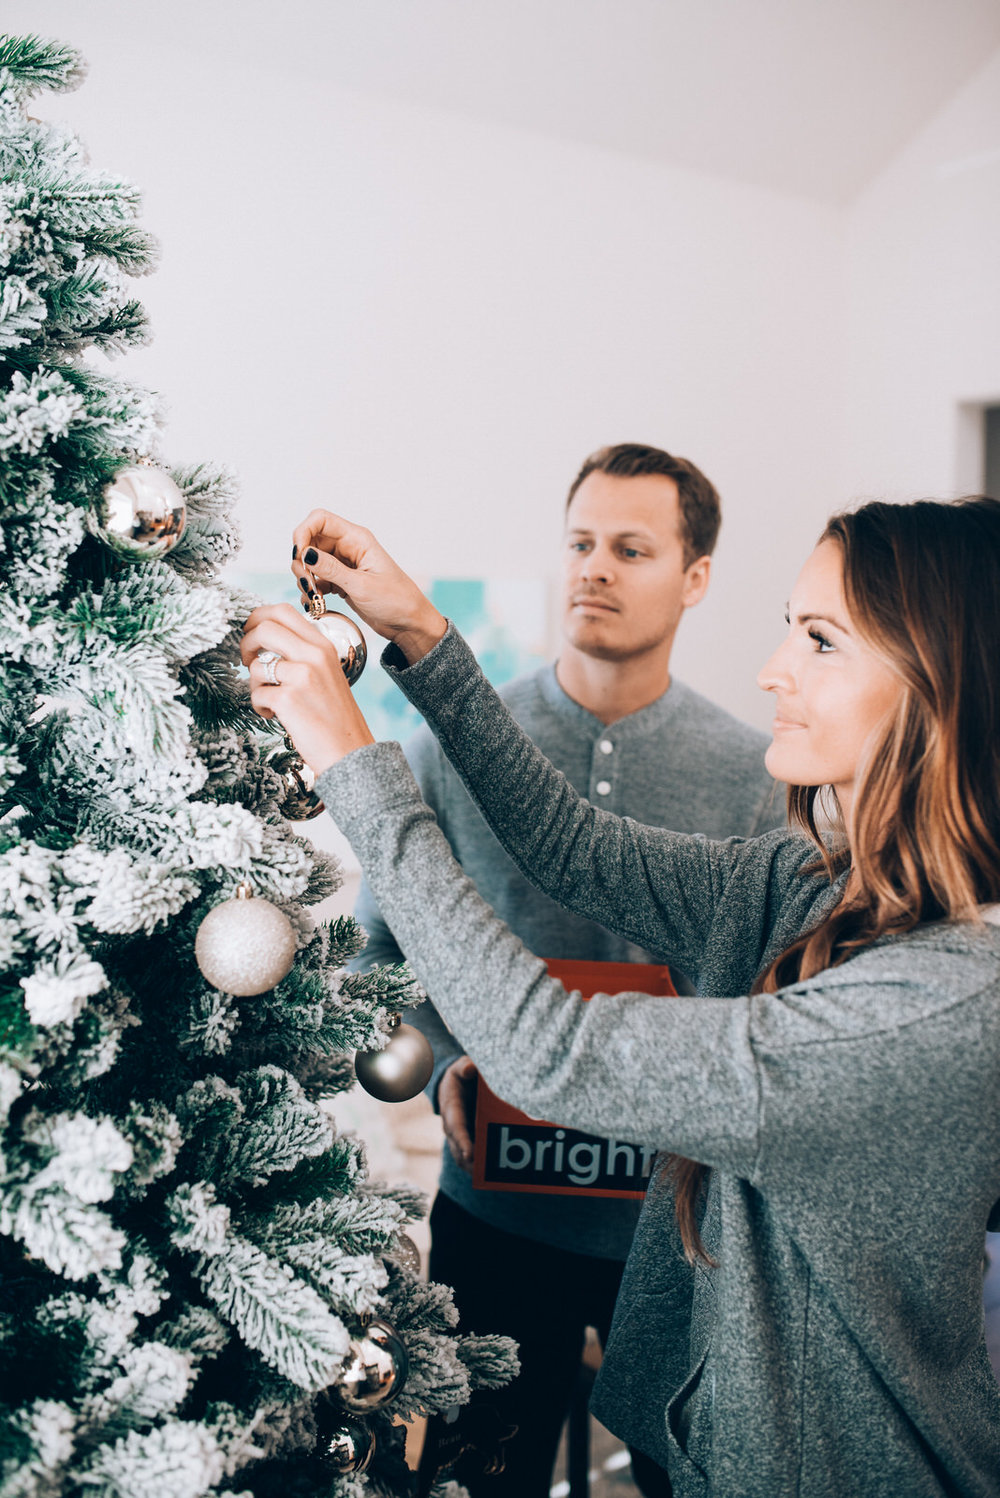 Christmas Couples Photos - Denver-Boulder wedding photographer (13 of 72).jpg